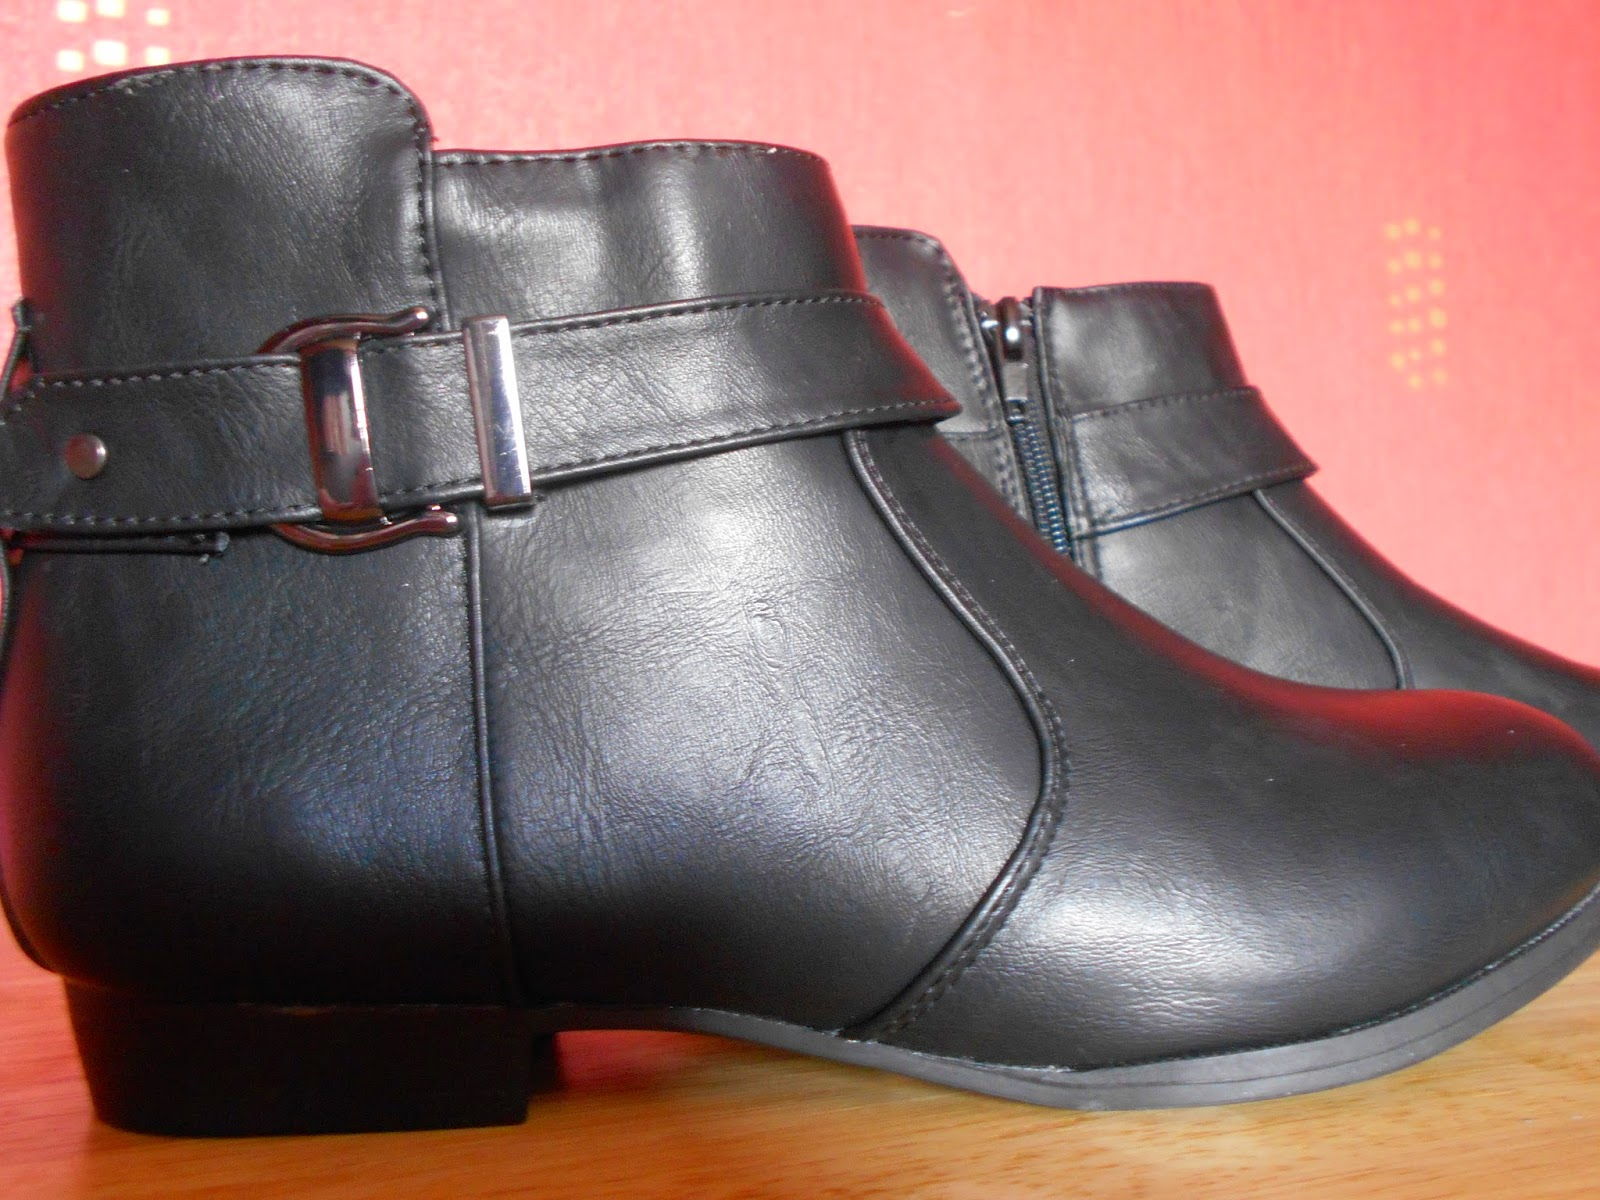 New Look: Ankle Boots